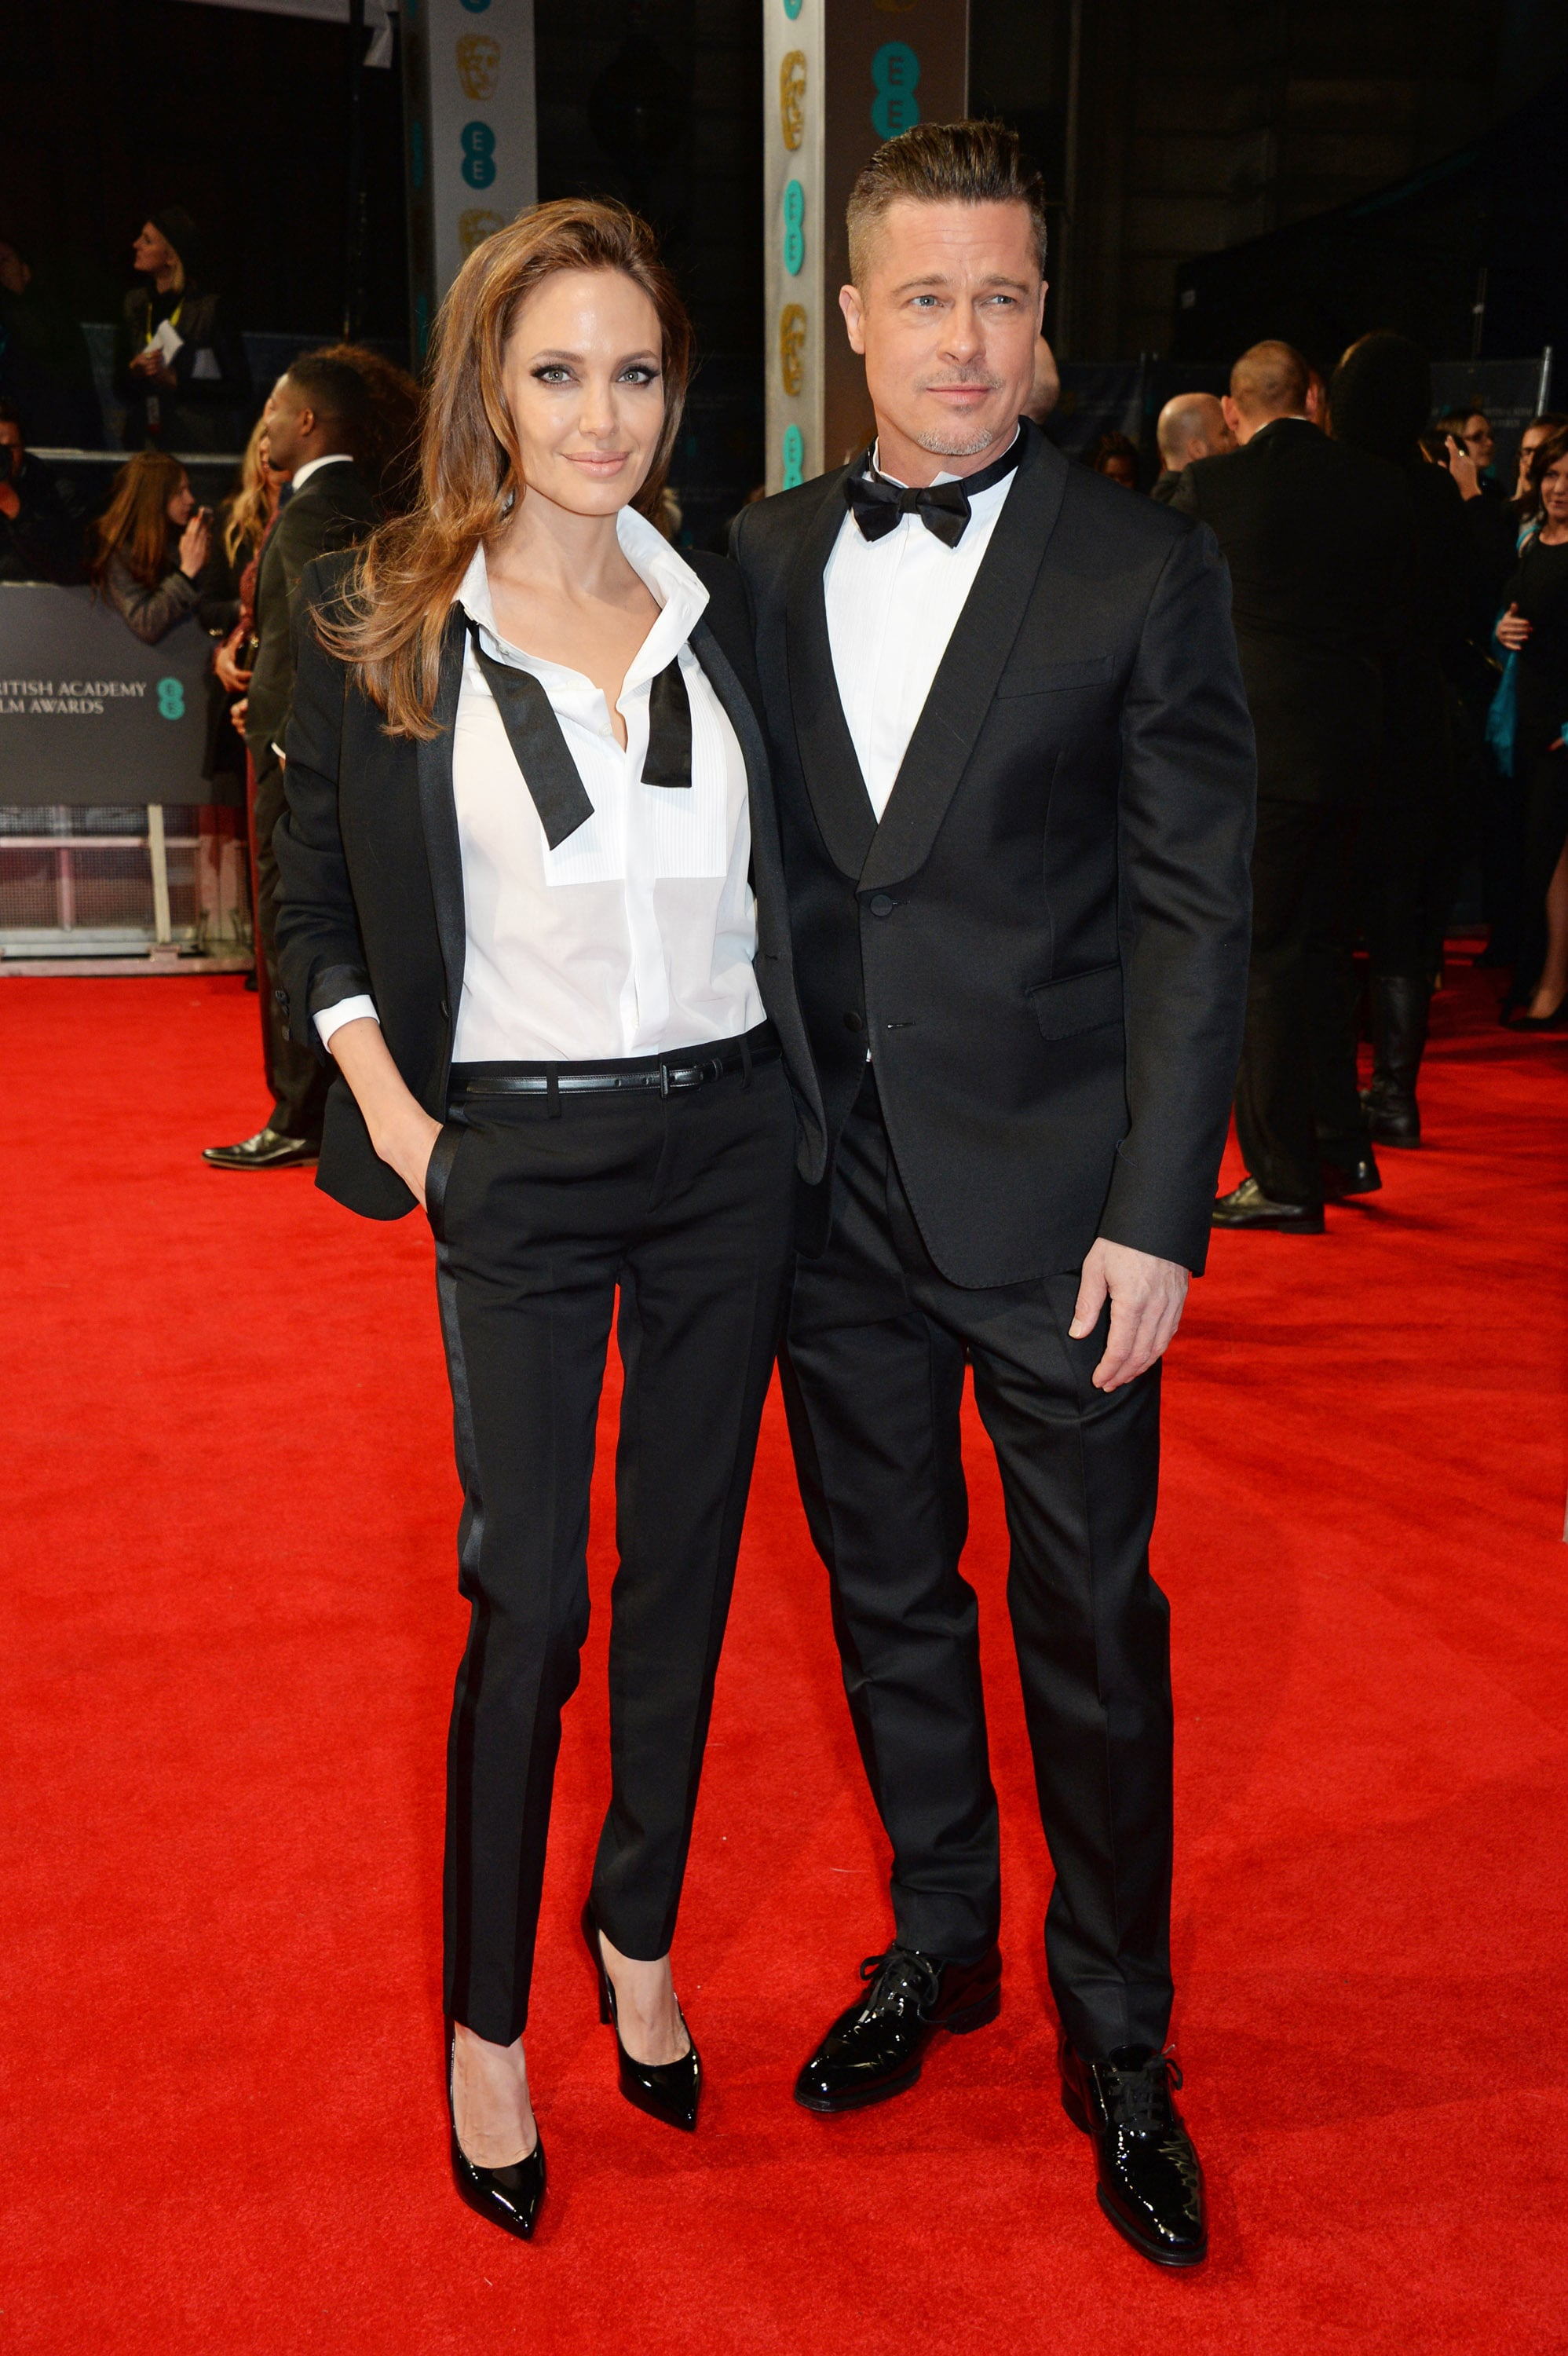 Angelina Jolie and Brad Pitt matched in suits at the BAFTAs, looking picture perfect, as always.